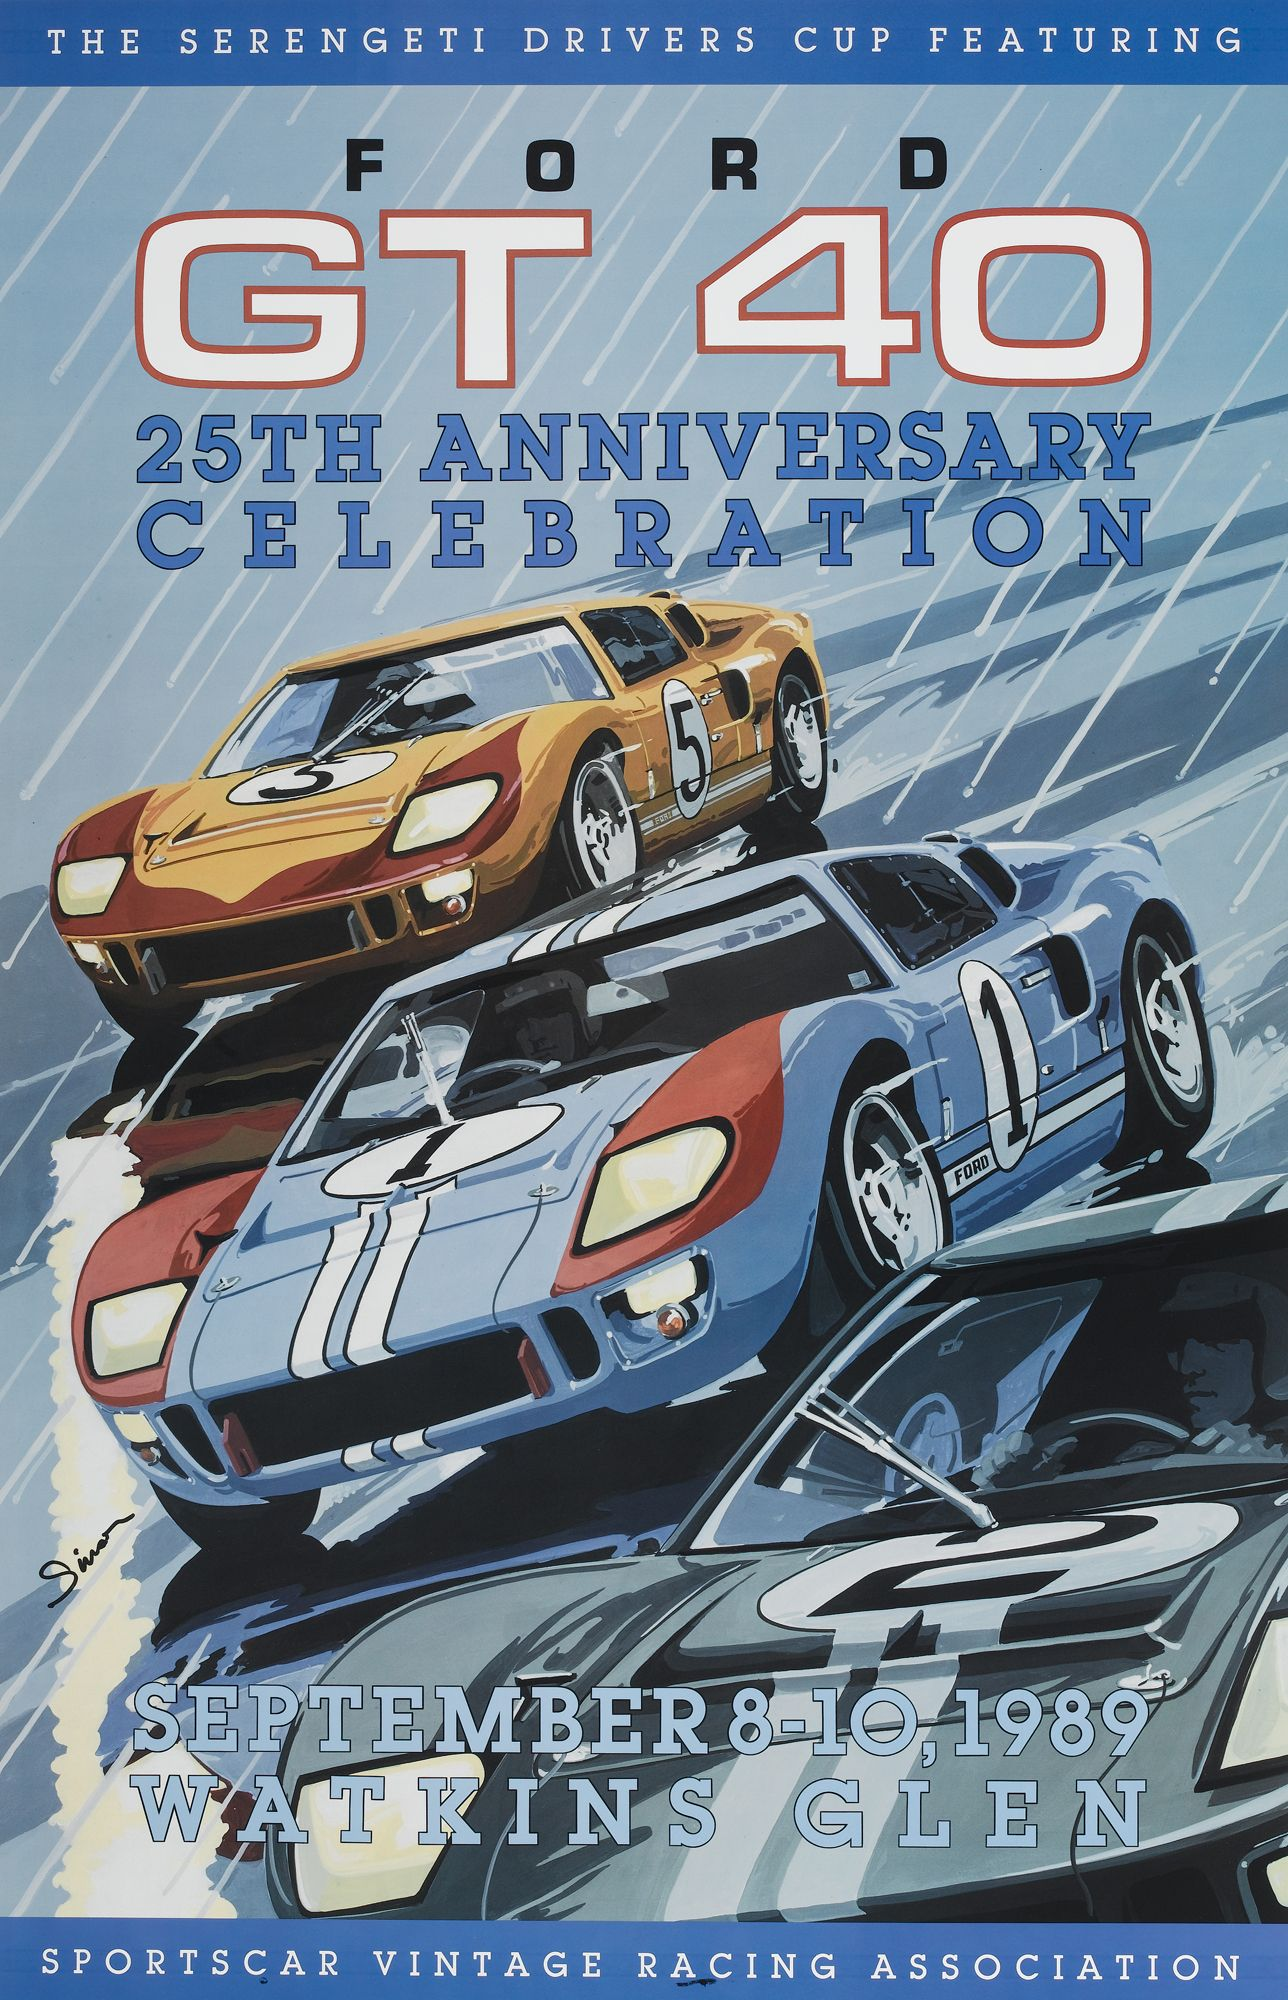 Ford Gt Poster : poster, Vintage, Style, Poster., Racing., Dennis, Simon., Poster, Available, Centuryofspeed.co…, Racing, Racing,, Posters